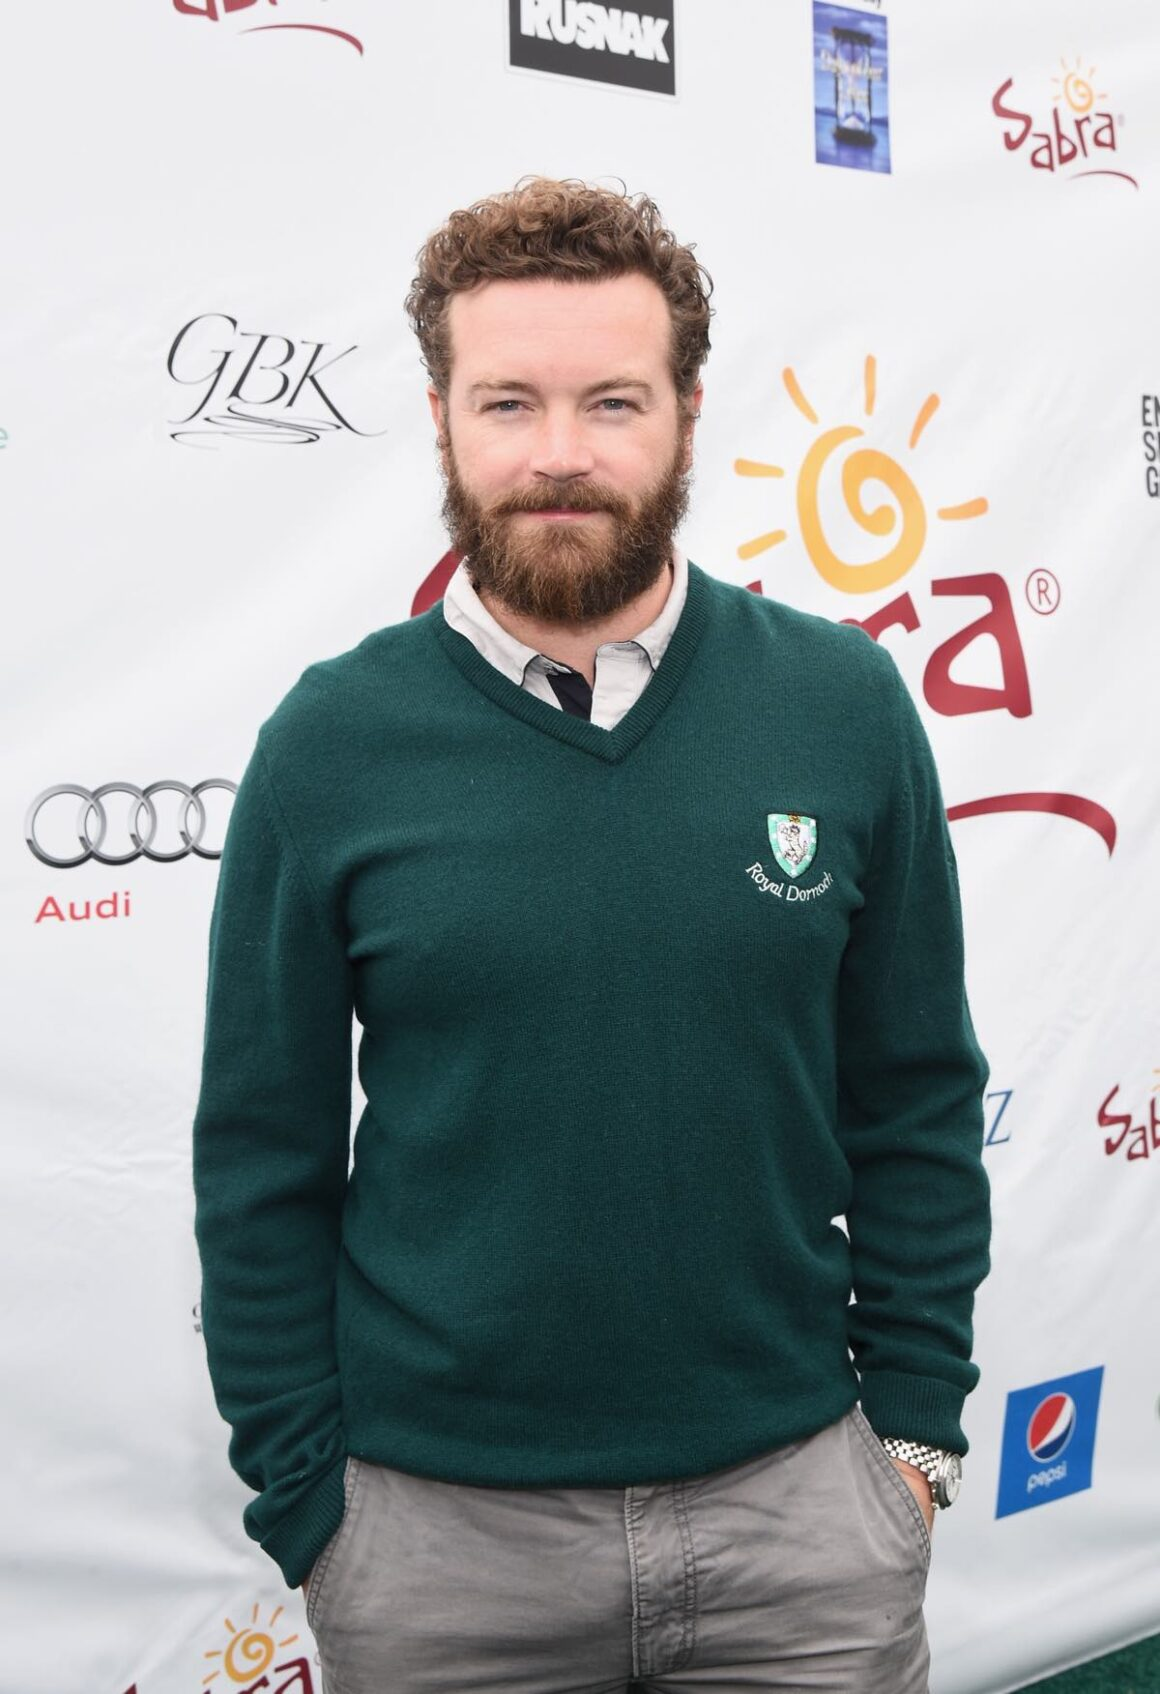 Danny Masterson 8th Annual George Lopez Celebrity Golf Classic Presented By Sabra Salsa To Benefit The George Lopez Foundation